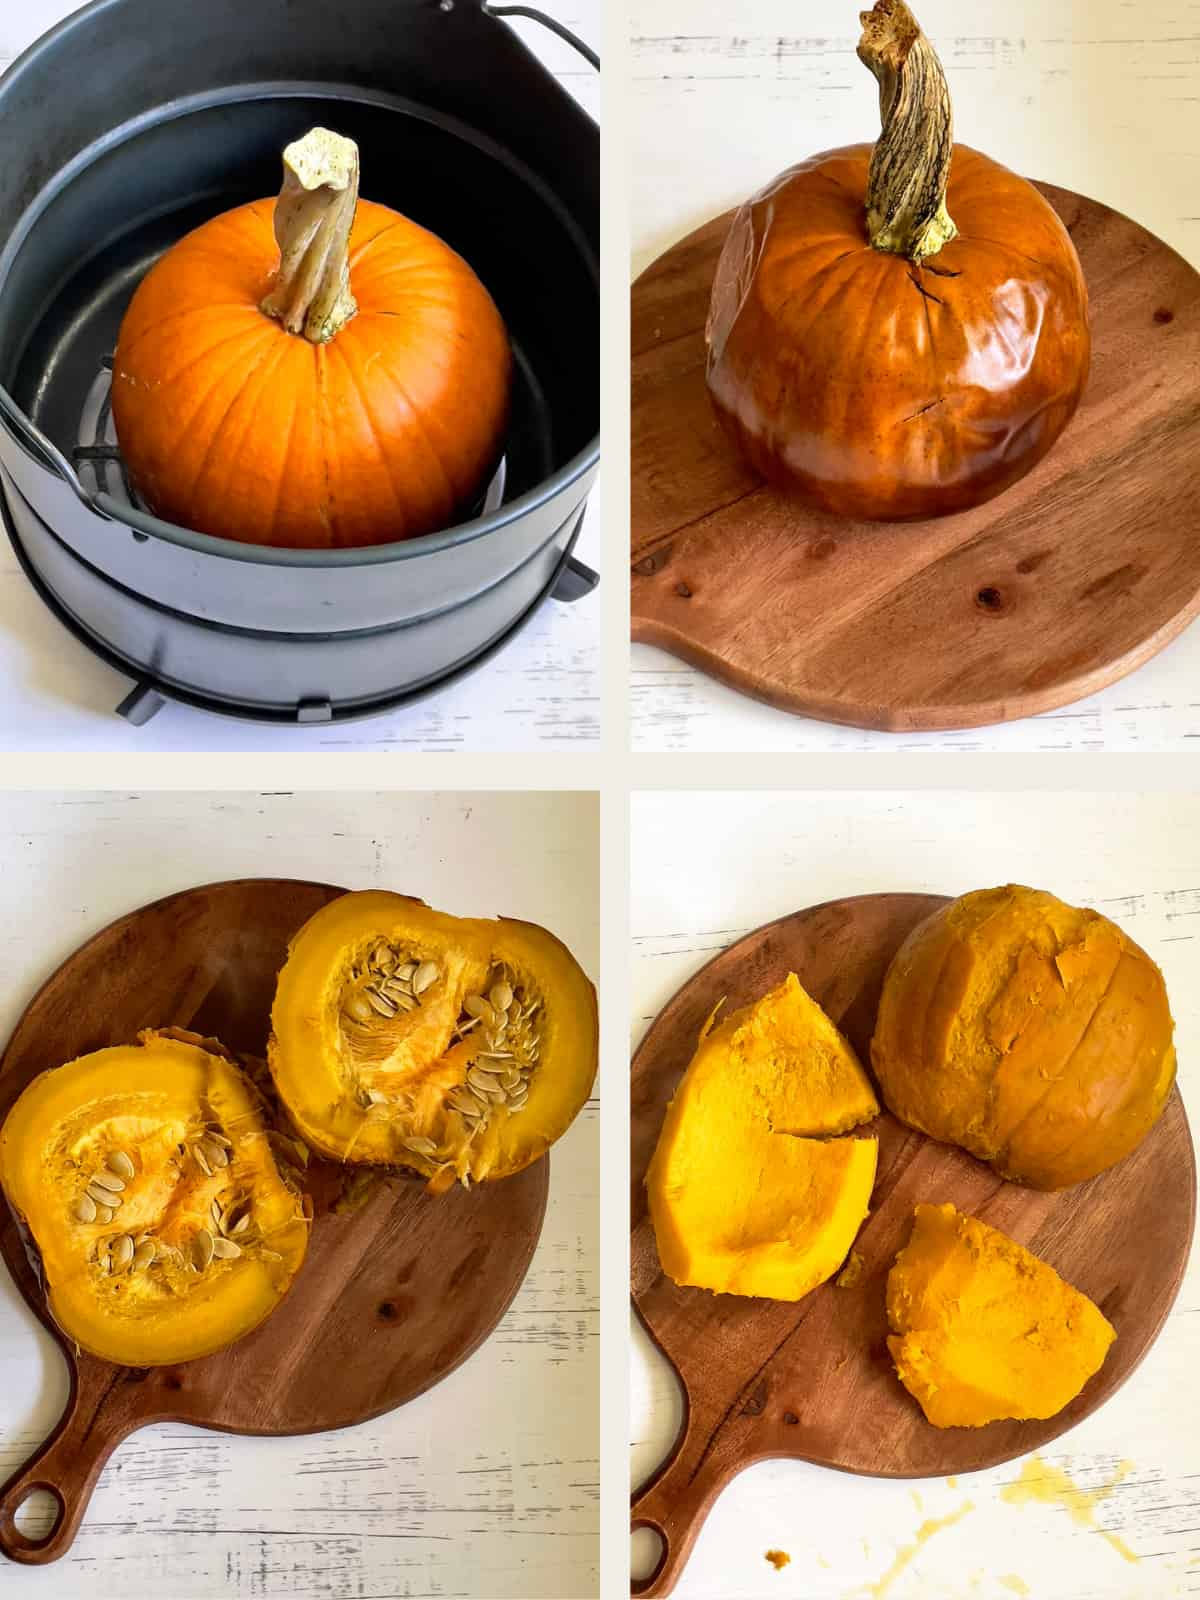 steps to air frying, pulping, and slicing a whole pumpkin